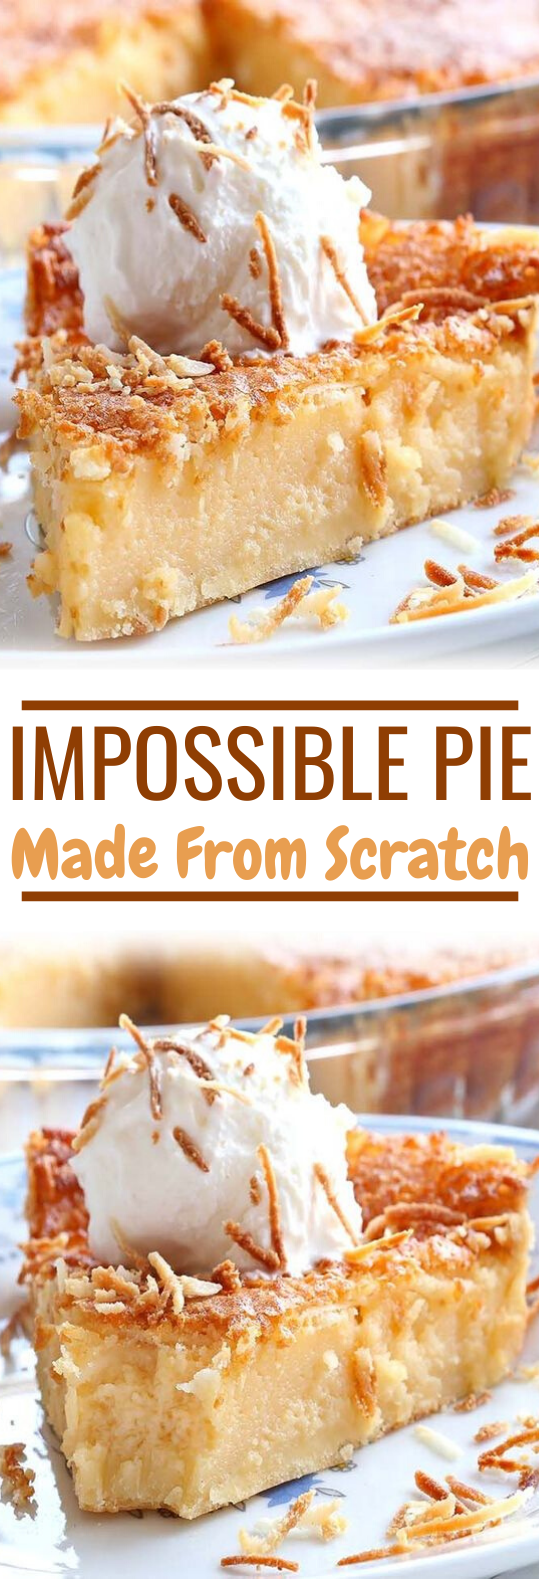 Impossible Pie #desserts #baking #cake #pie #pastry